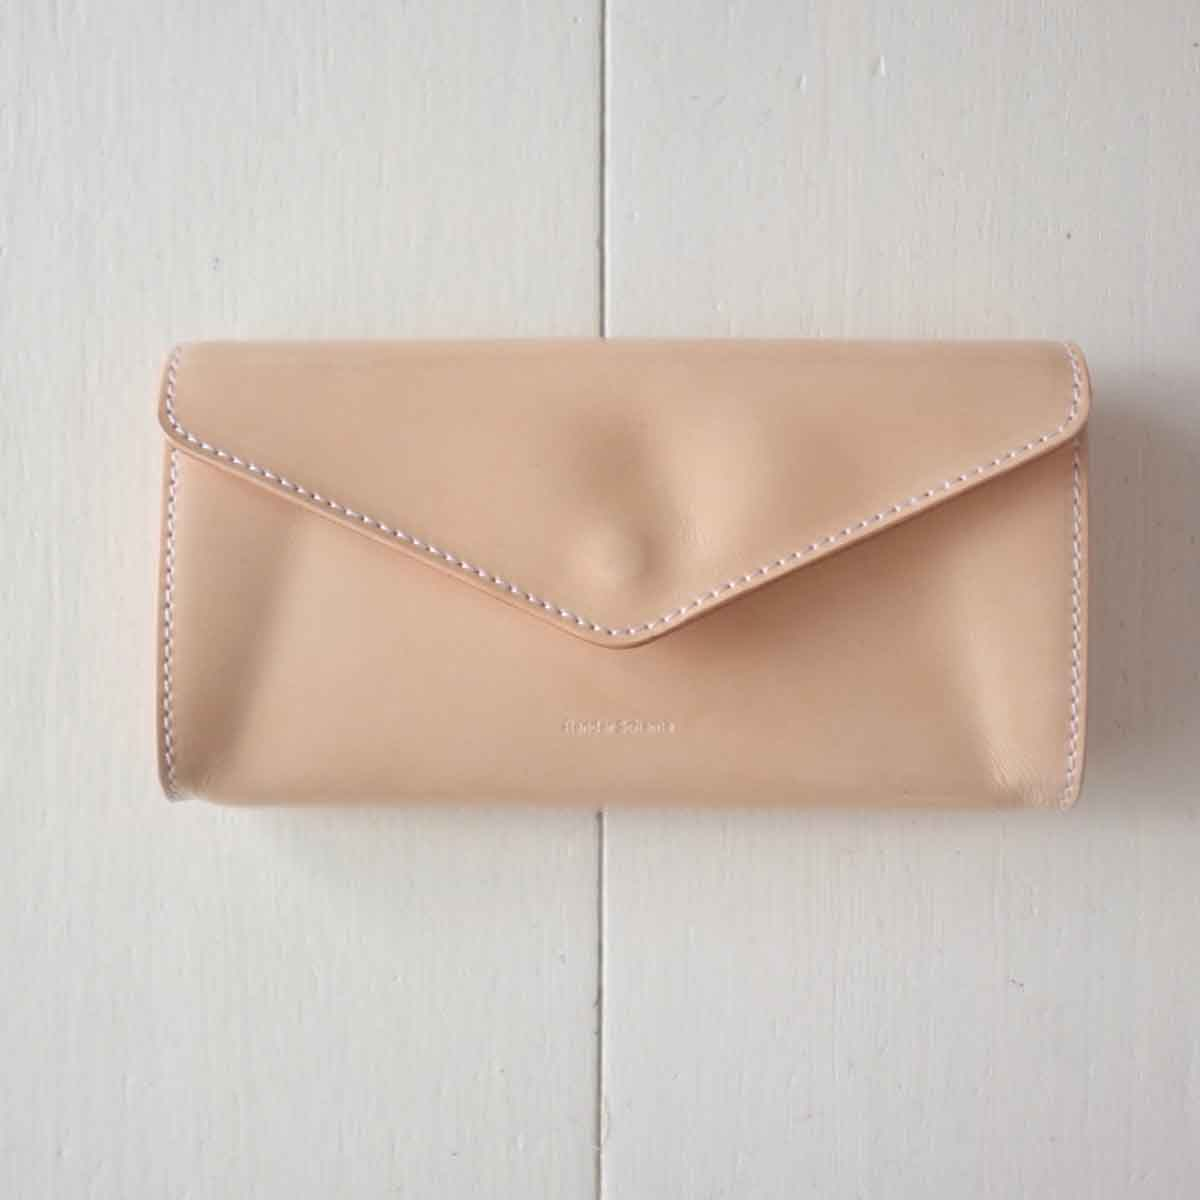 【30%OFF】 Hender wallet Scheme エンダースキーマ long wallet patent leather natural leather エンダースキーマ ロングウォレット, 道具文化:6abbe3e3 --- enduro.pl